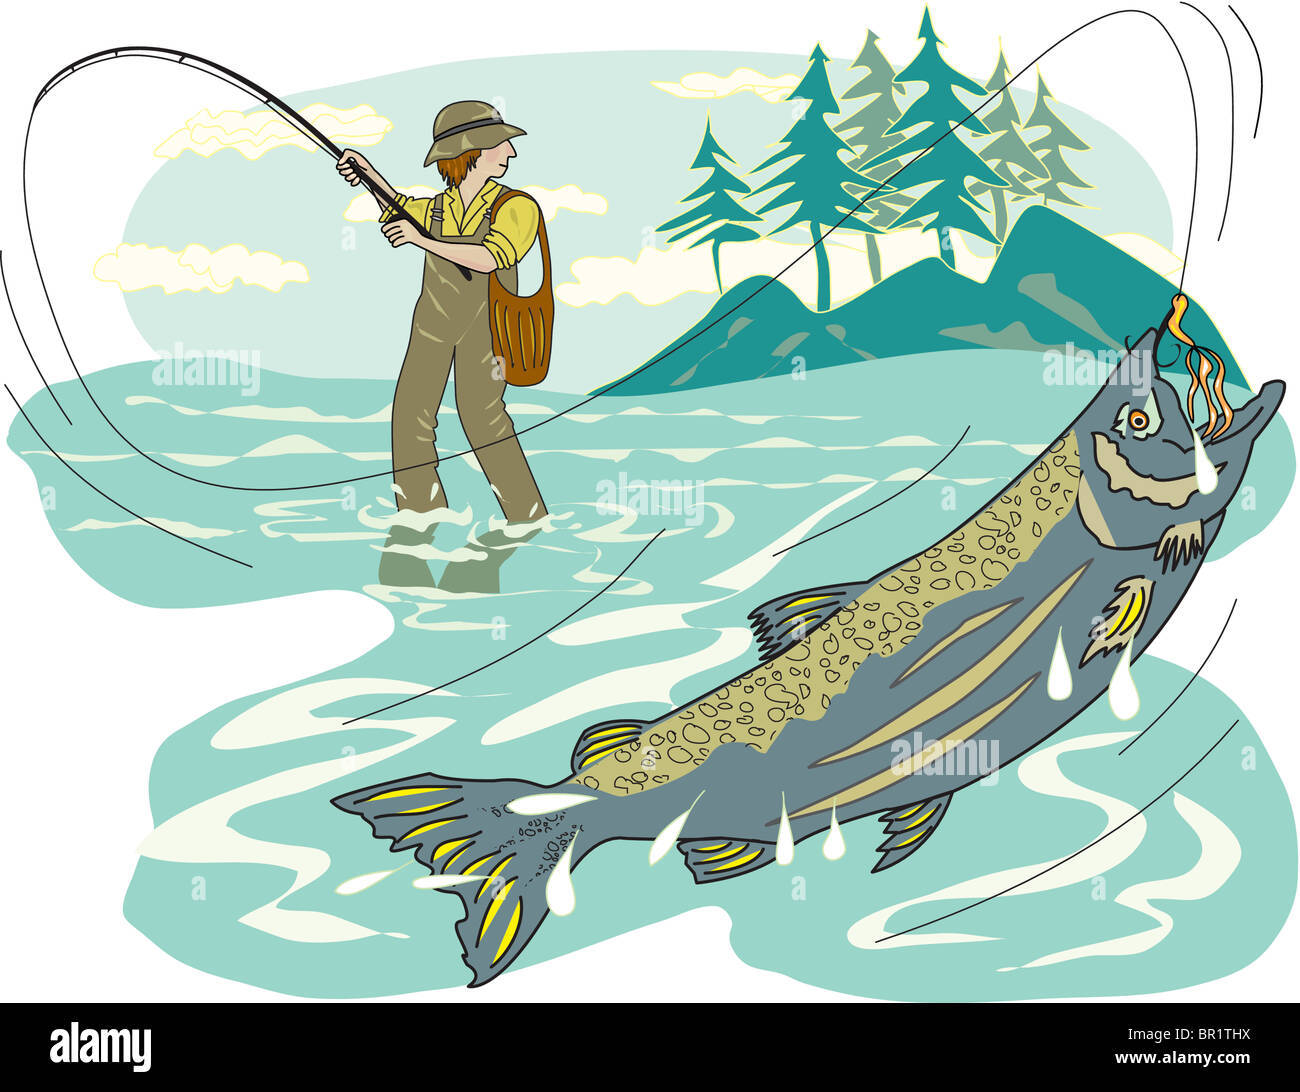 A pictorial representation of a man fly fishing Stock Photo